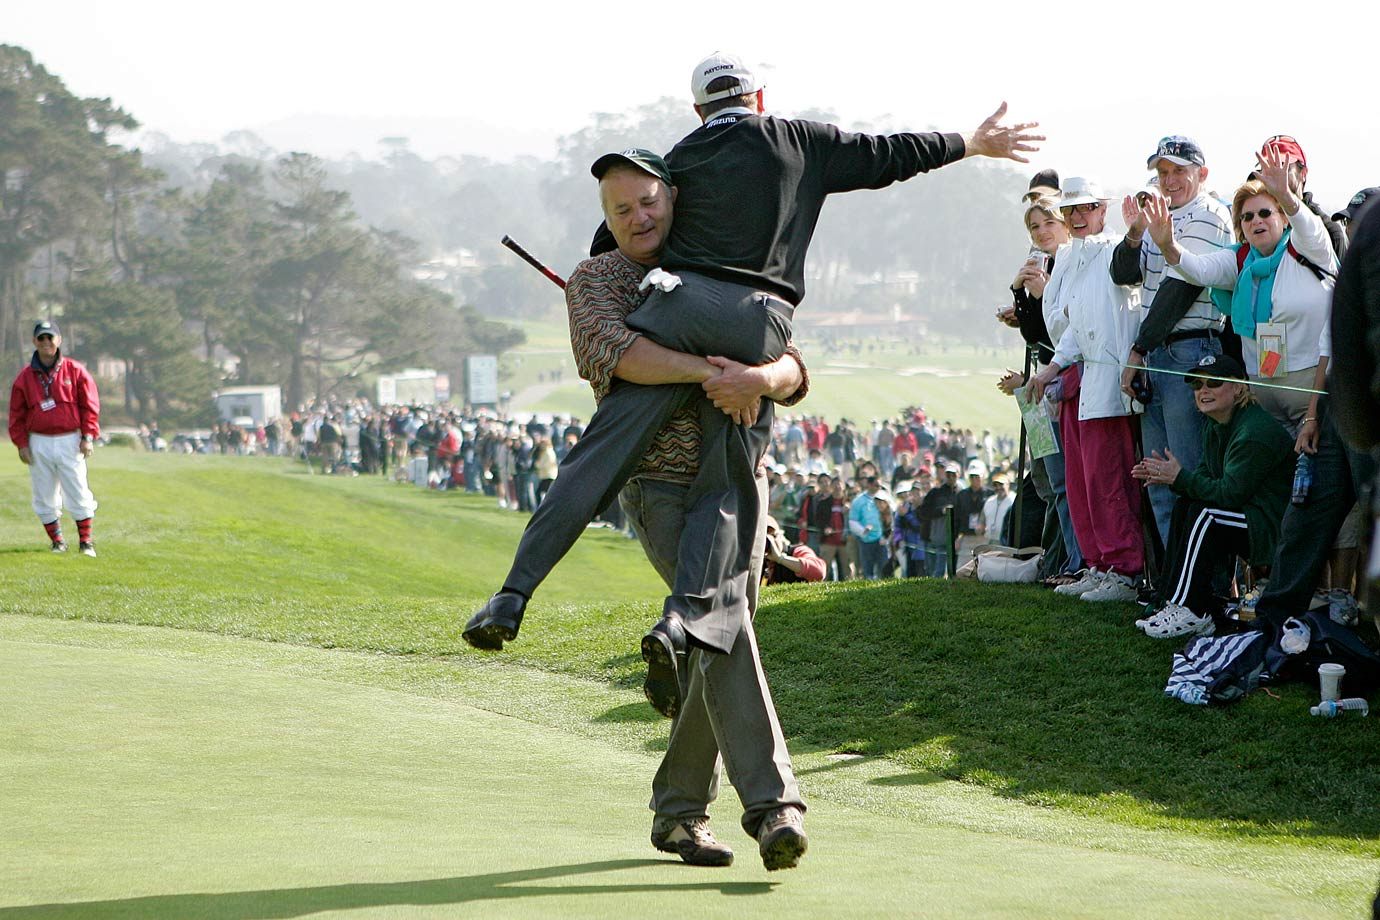 Bill Murray carries Jeff Sluman to the next tee during the AT&T Pebble Beach National Pro-Am golf tournament on Feb. 11, 2006 in Pebble Beach, Calif.